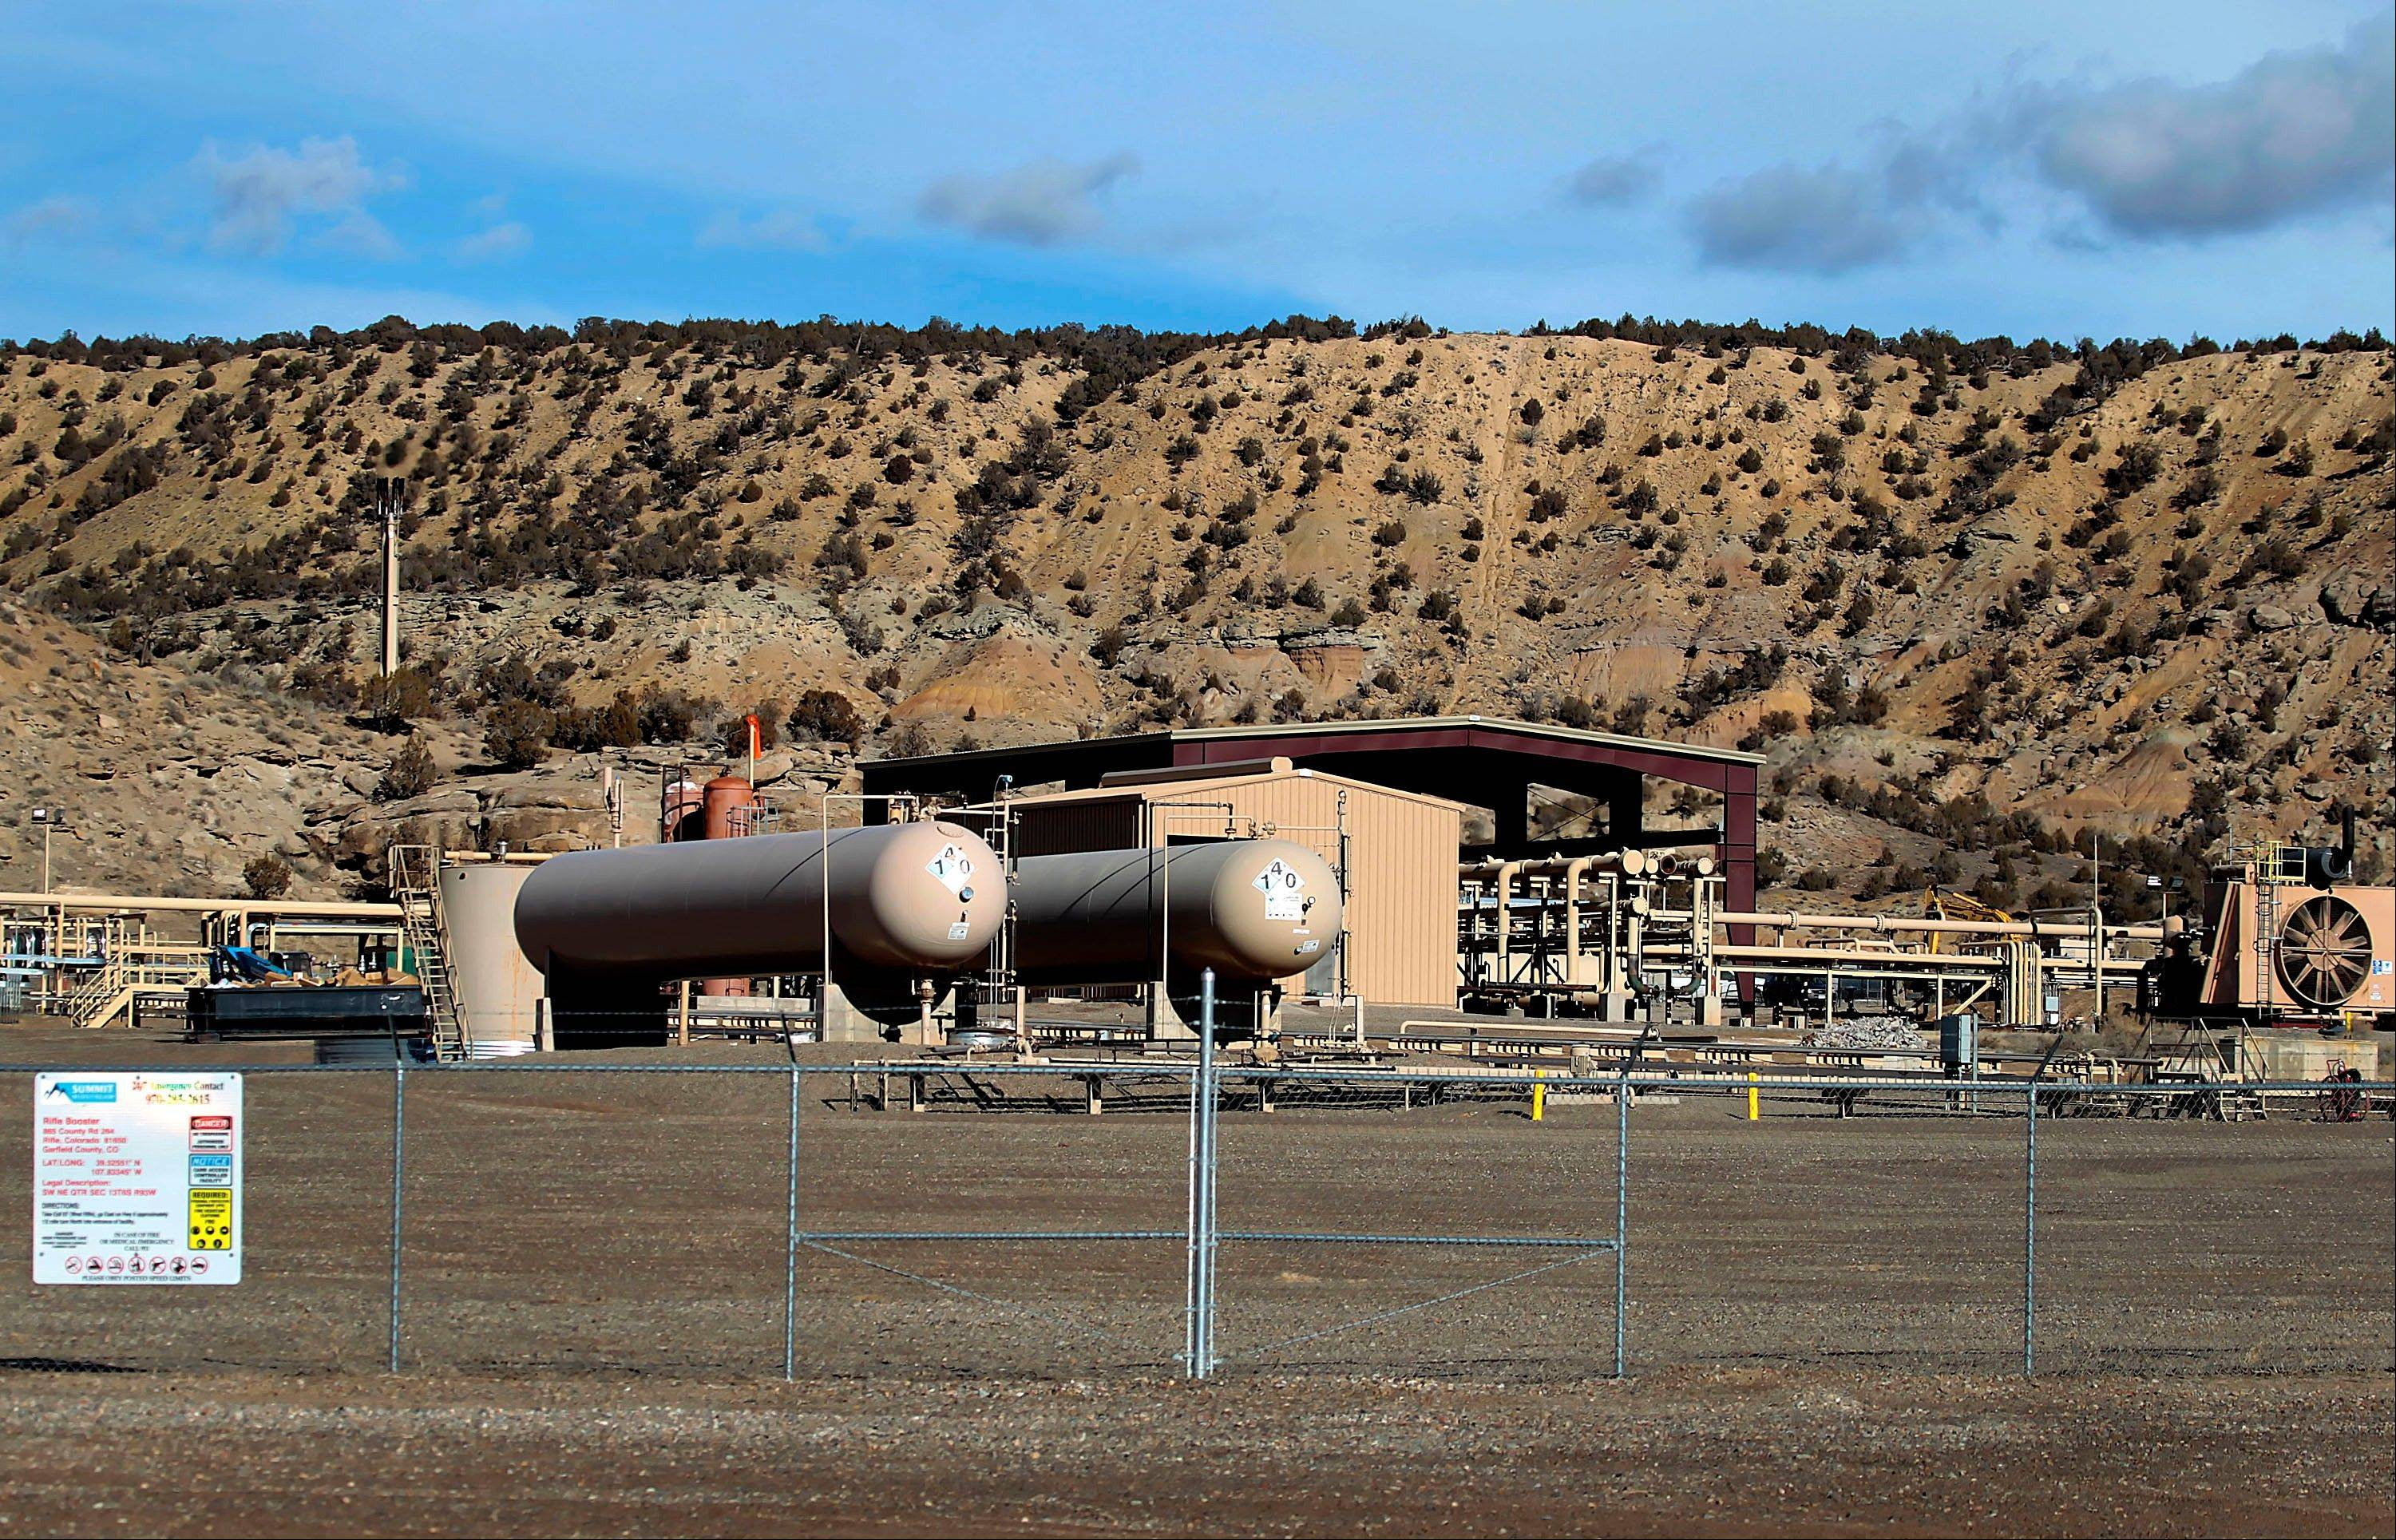 bloomberg news A natural gas conditioning station stands in a field west of Rifle, Colo. Natural gas futures declined in New York before a weekly government report that may show a seasonal stockpile decline.